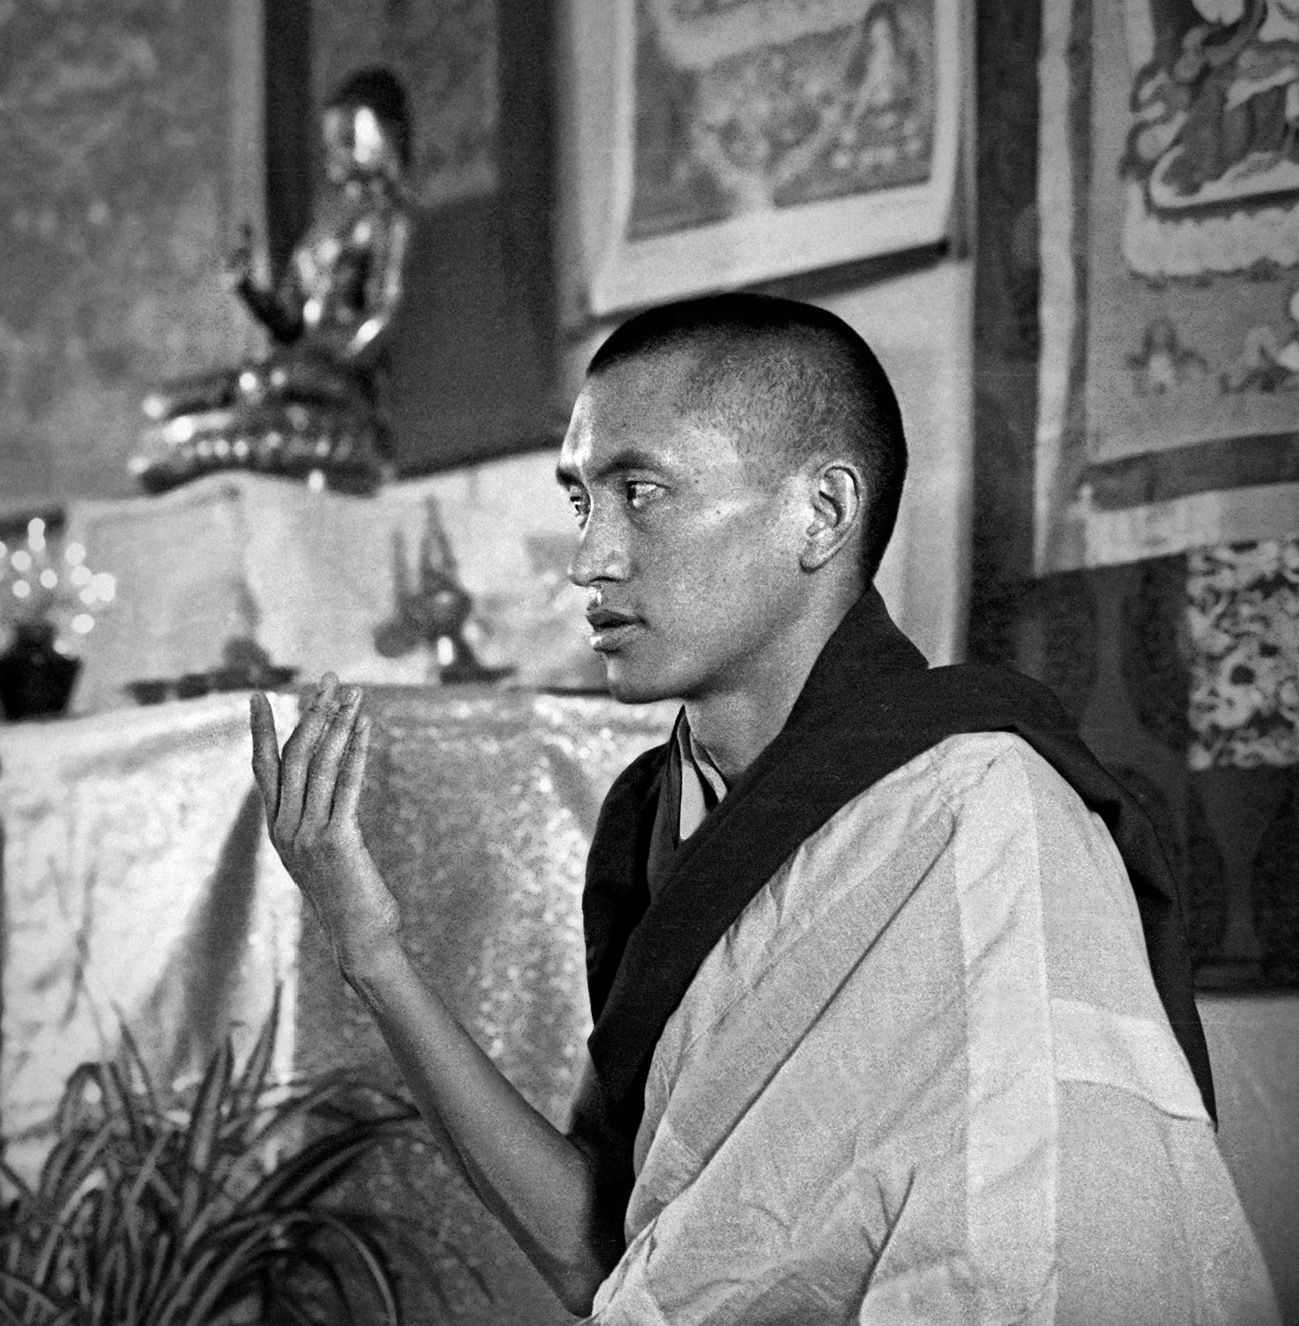 Lama Zopa Rinpoche giving these teachings at Royal Holloway College in England, 1975. Photo by Dennis Heslop.